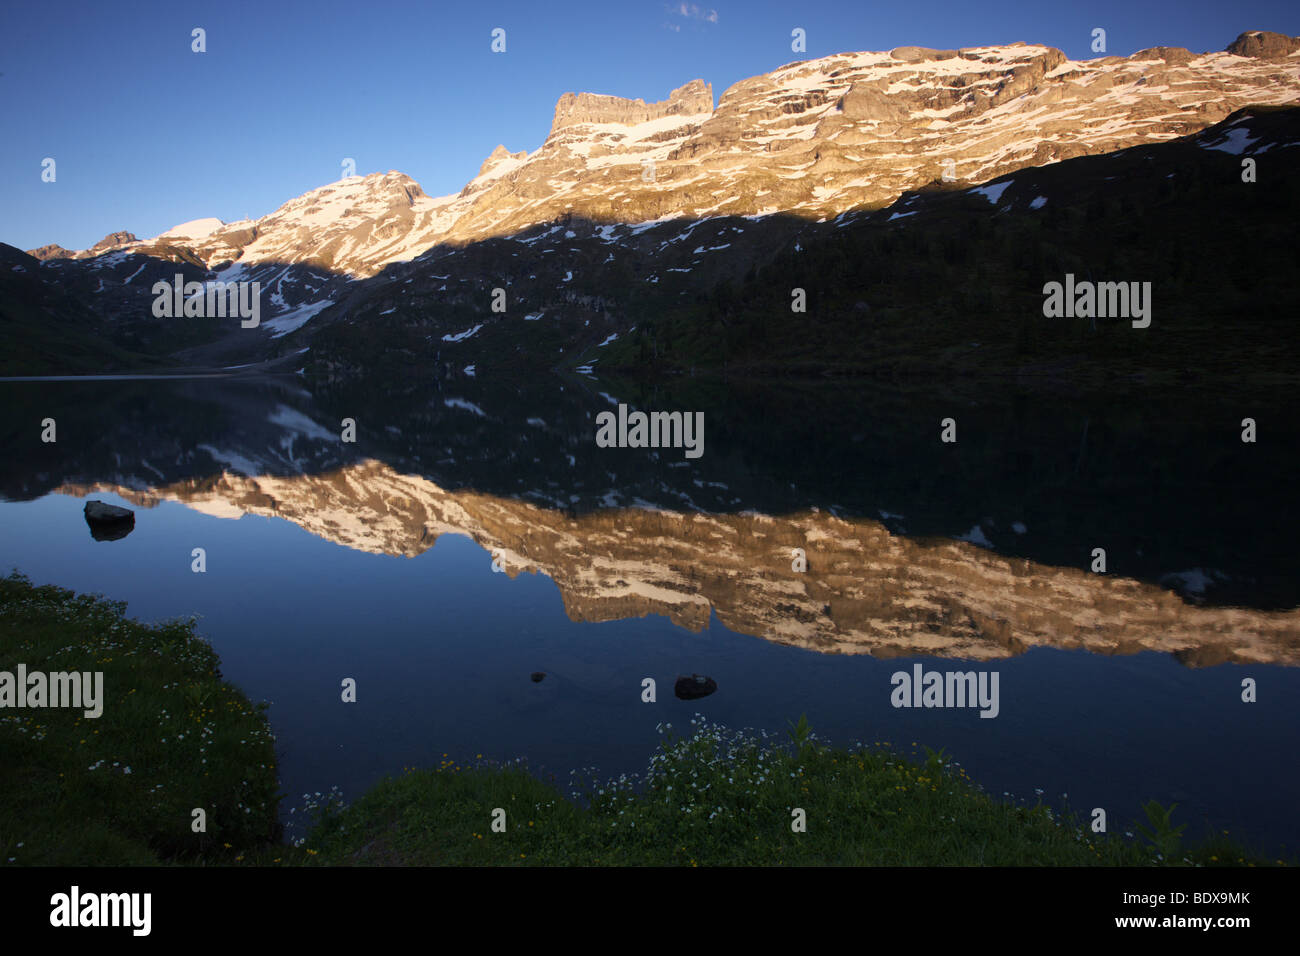 Reflection in a mountain lake in the Bernese Oberland, Switzerland, Europe Stock Photo